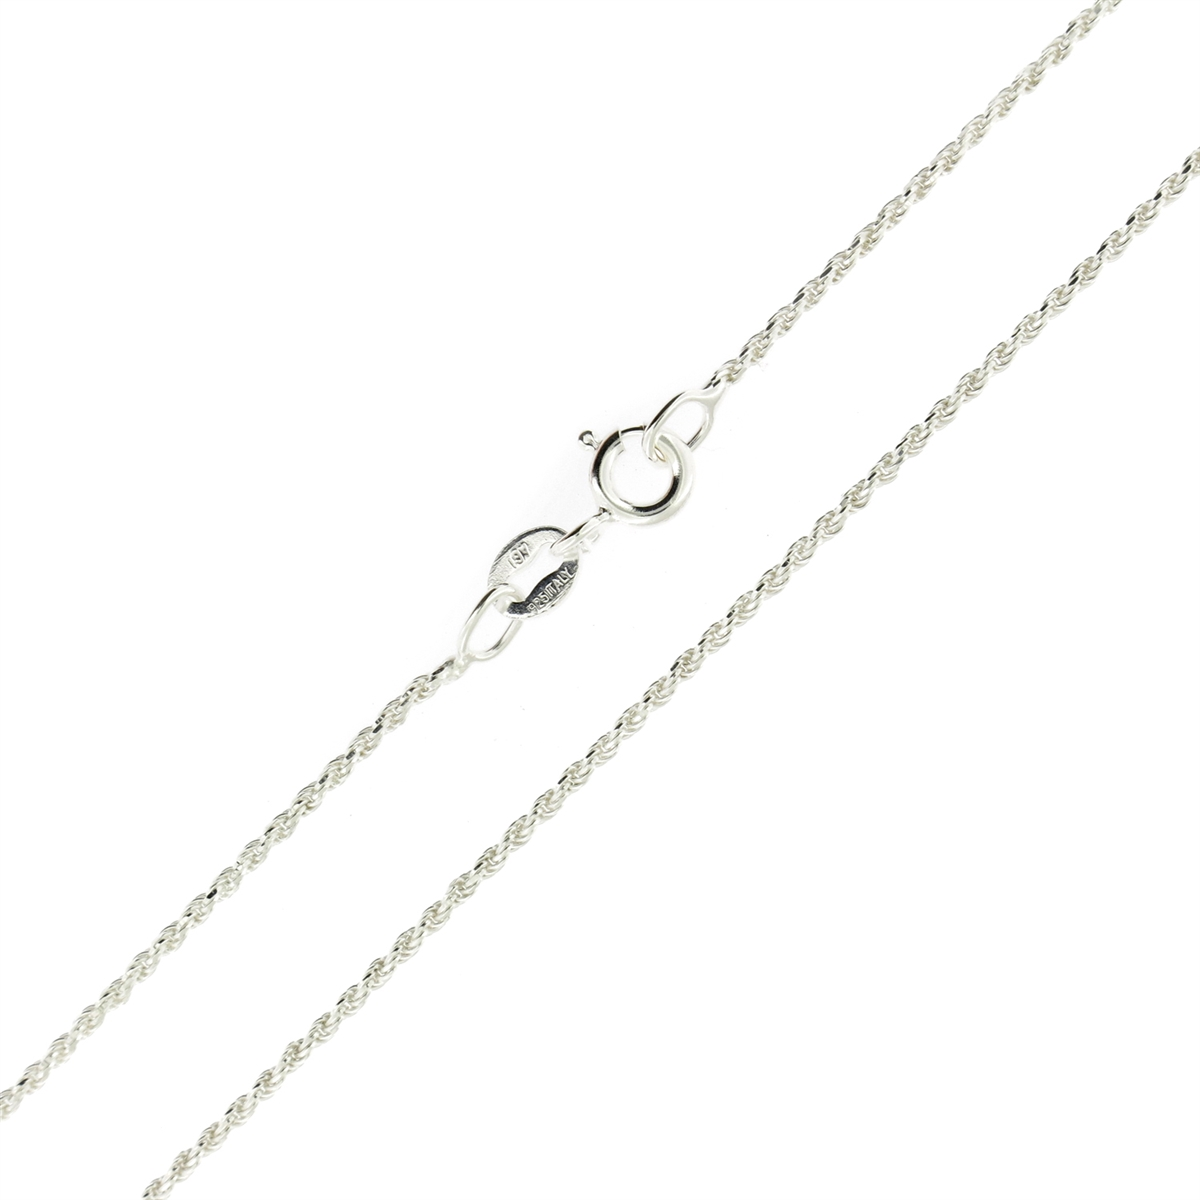 views dcrope diamond mm chain htm silver gorgeous rope necklace sterling p cut alternative or bracelet